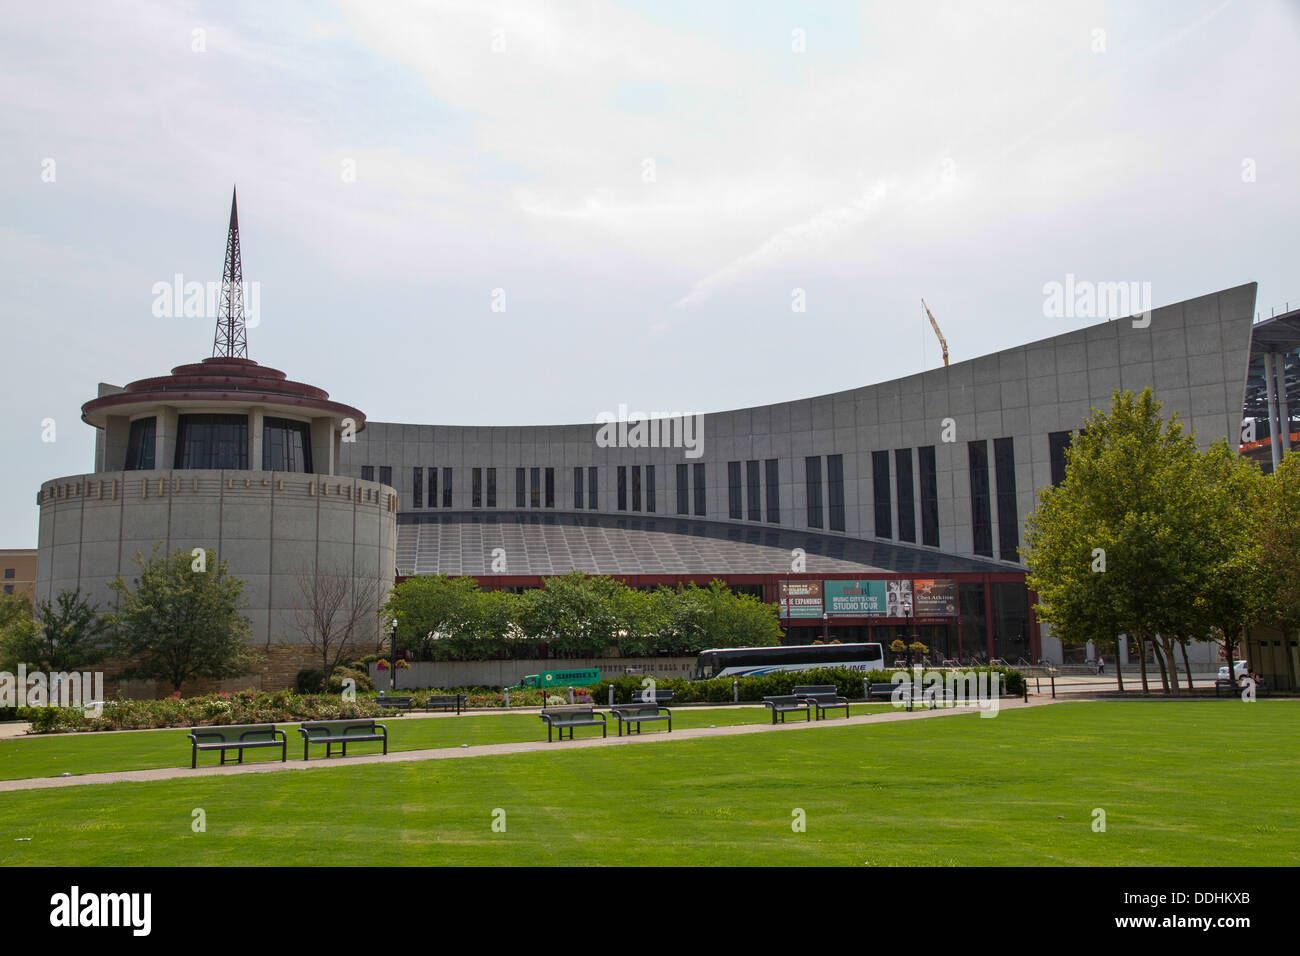 Country Music Hall Of Fame And Museum Nashville TN USA Stock - Music museums in usa